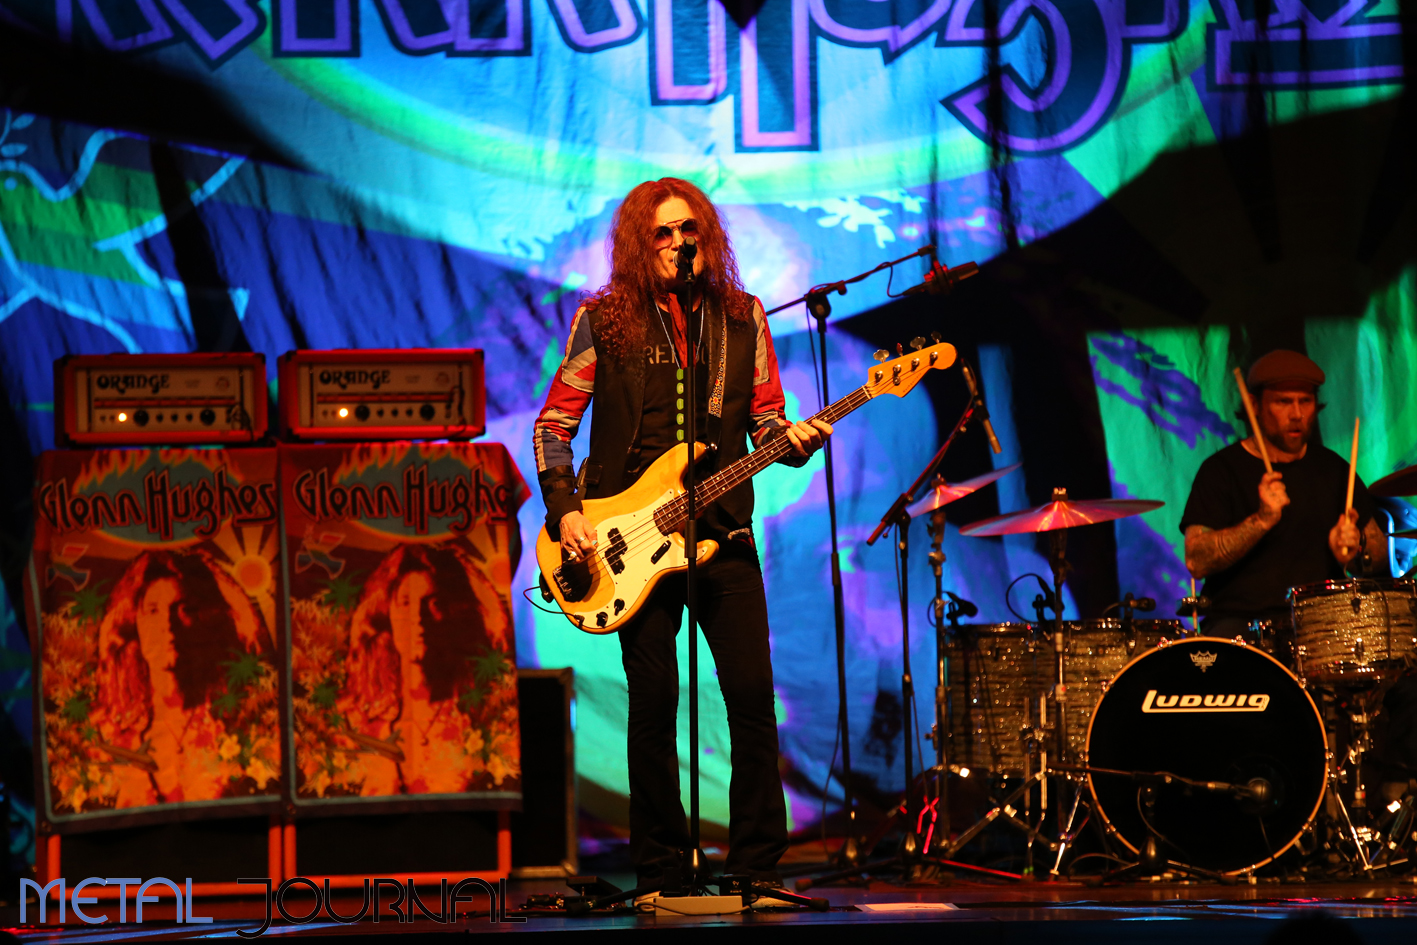 glenn hughes - metal journal pic 3